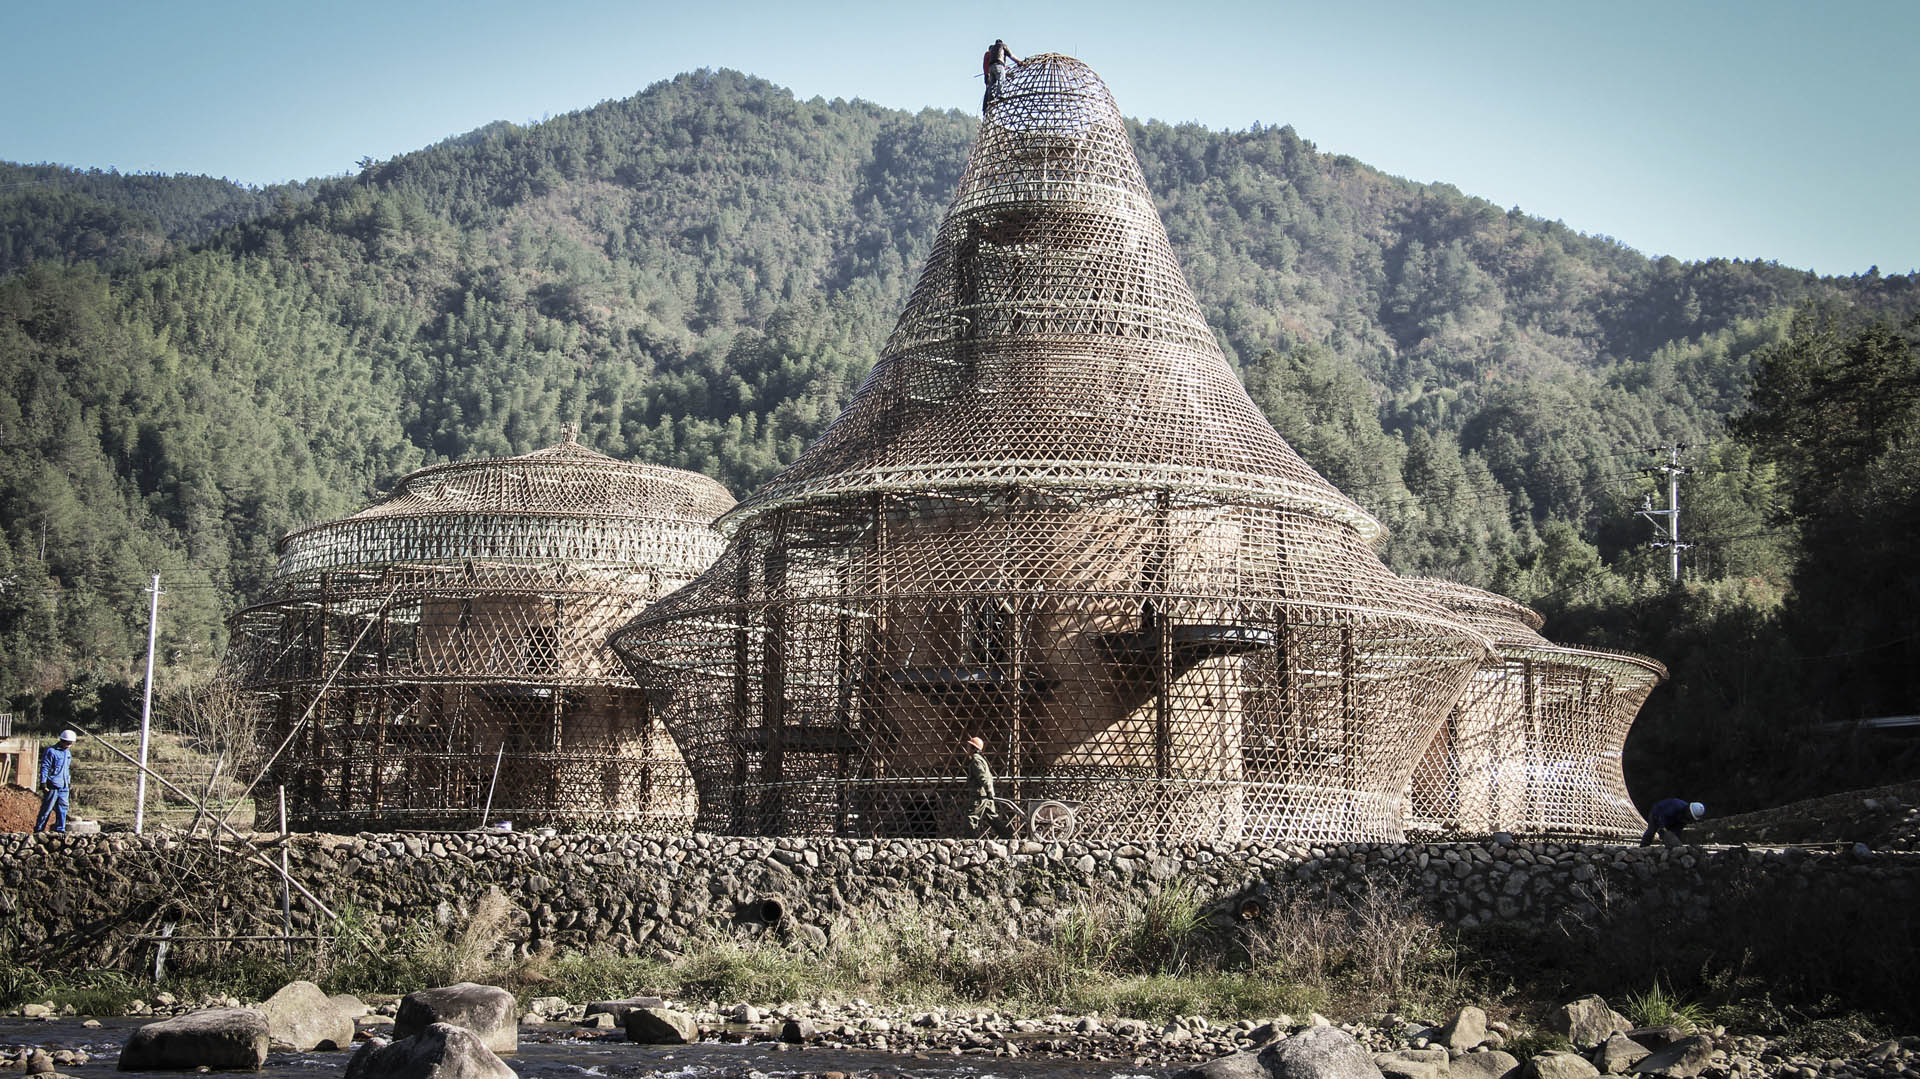 A remarkable hostel deep in rural china by anna heringer uncube almost done construction of the three hostels in baoxi china february 2016 buycottarizona Image collections